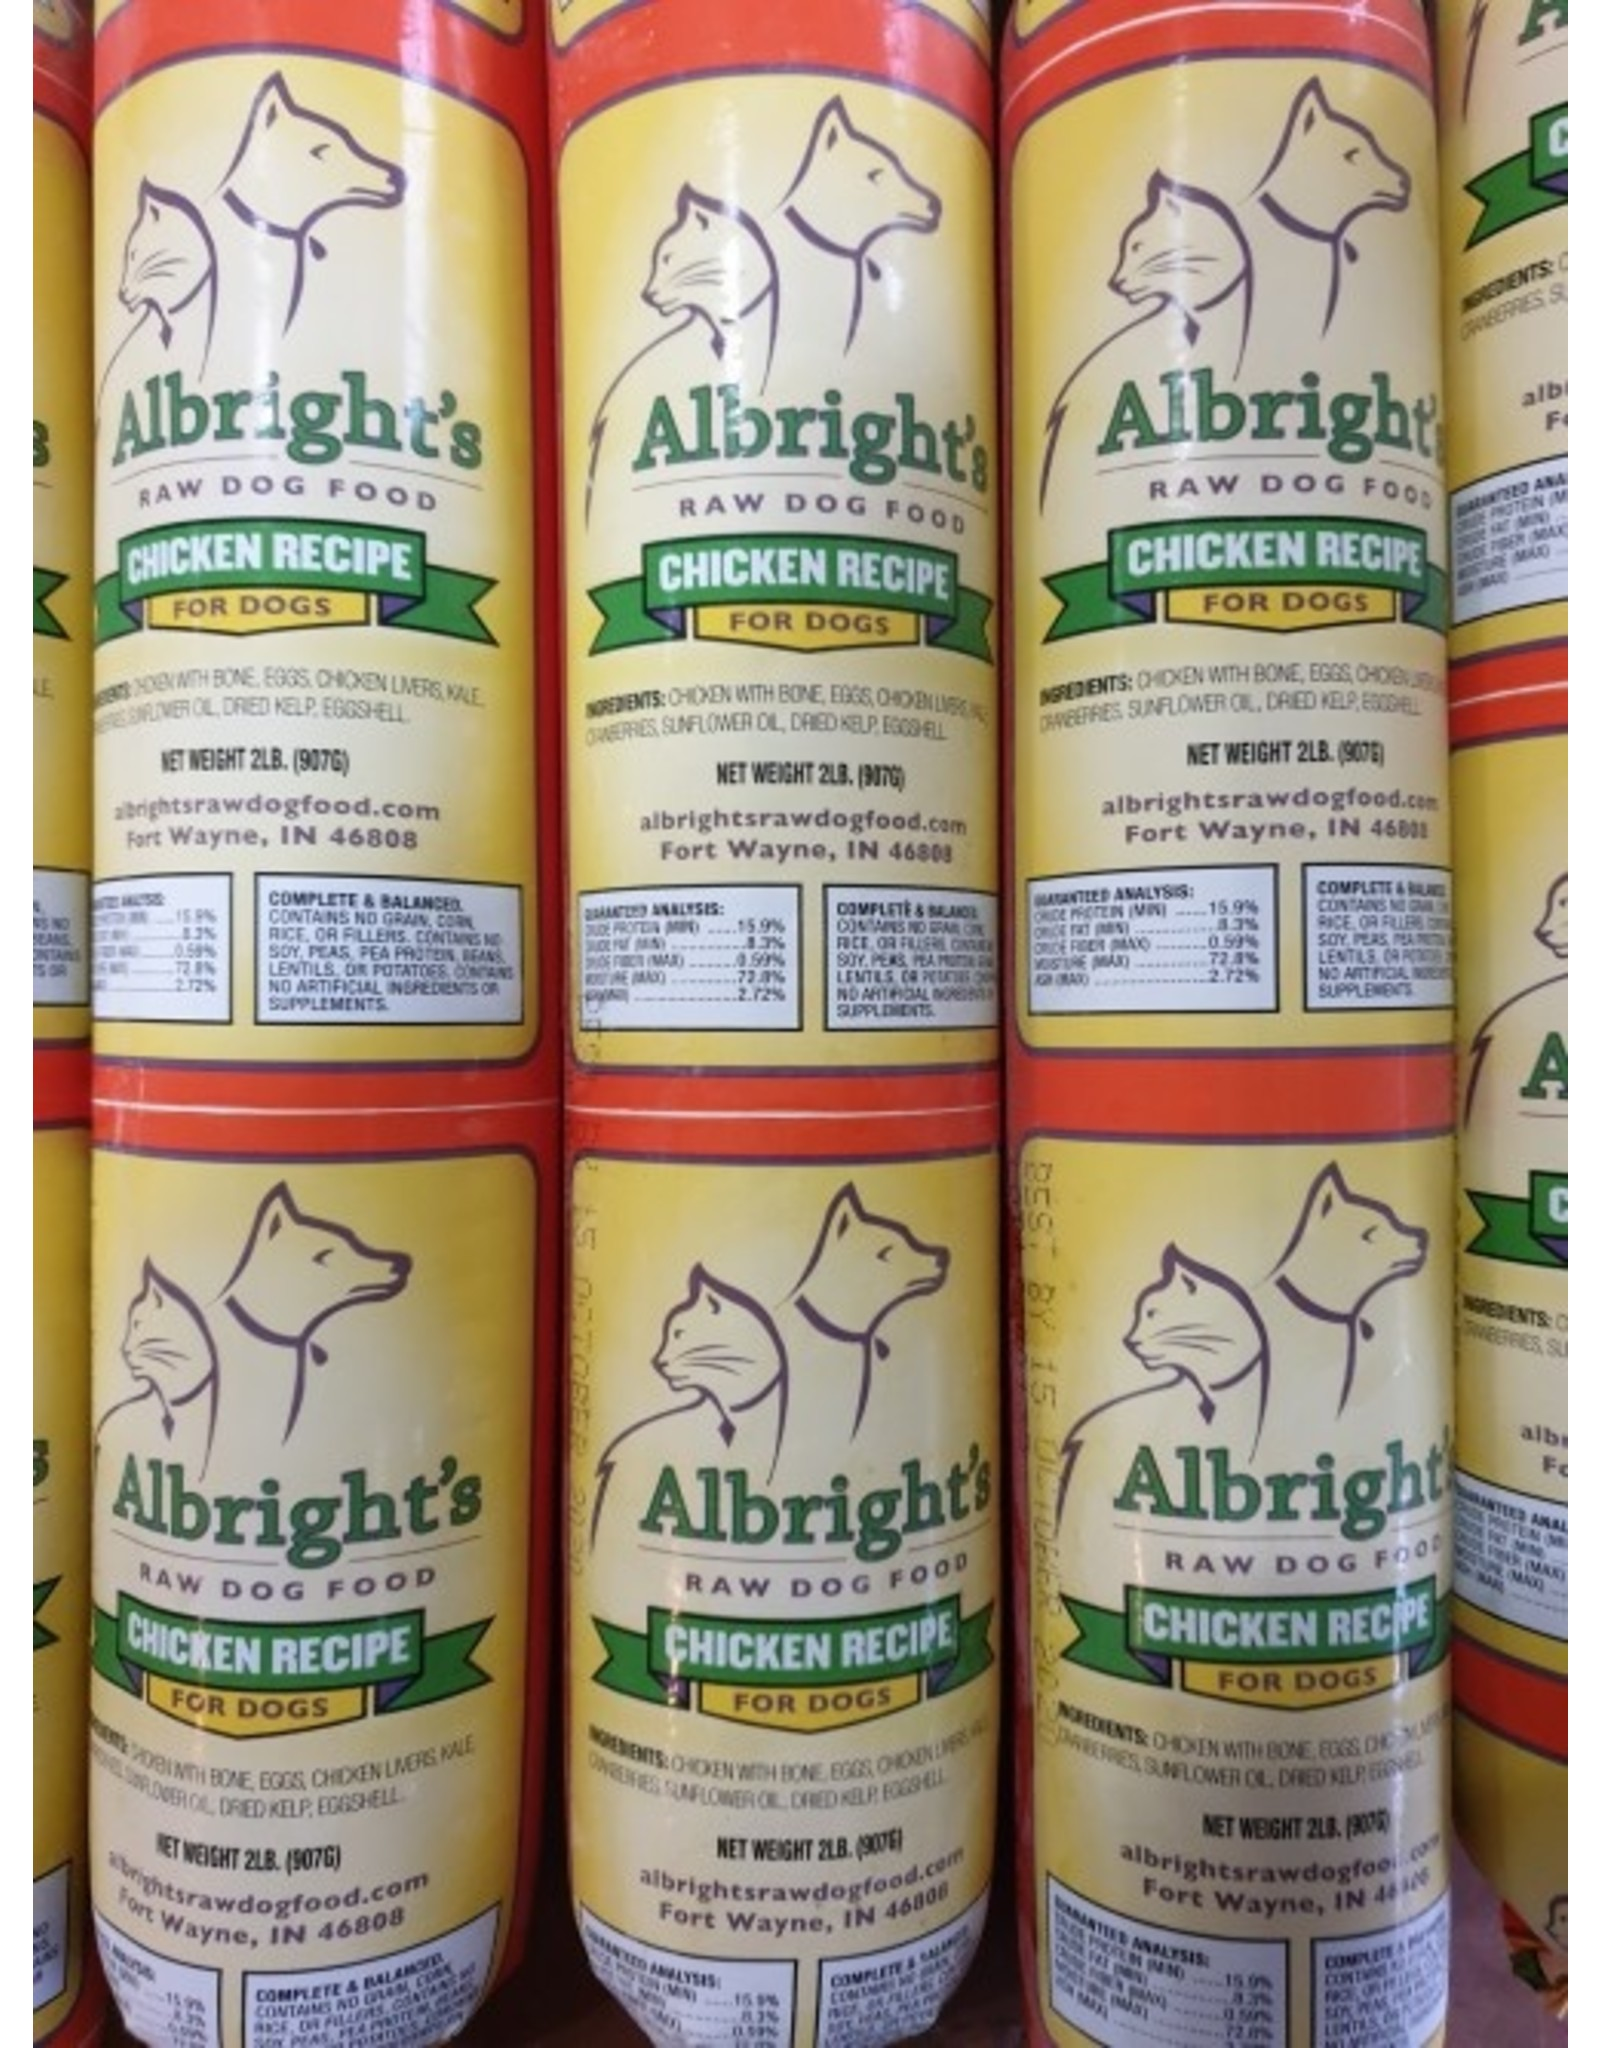 Albrights Albright's Frozen Raw Cat and Dog Food Chicken Recipe Chub 2lb